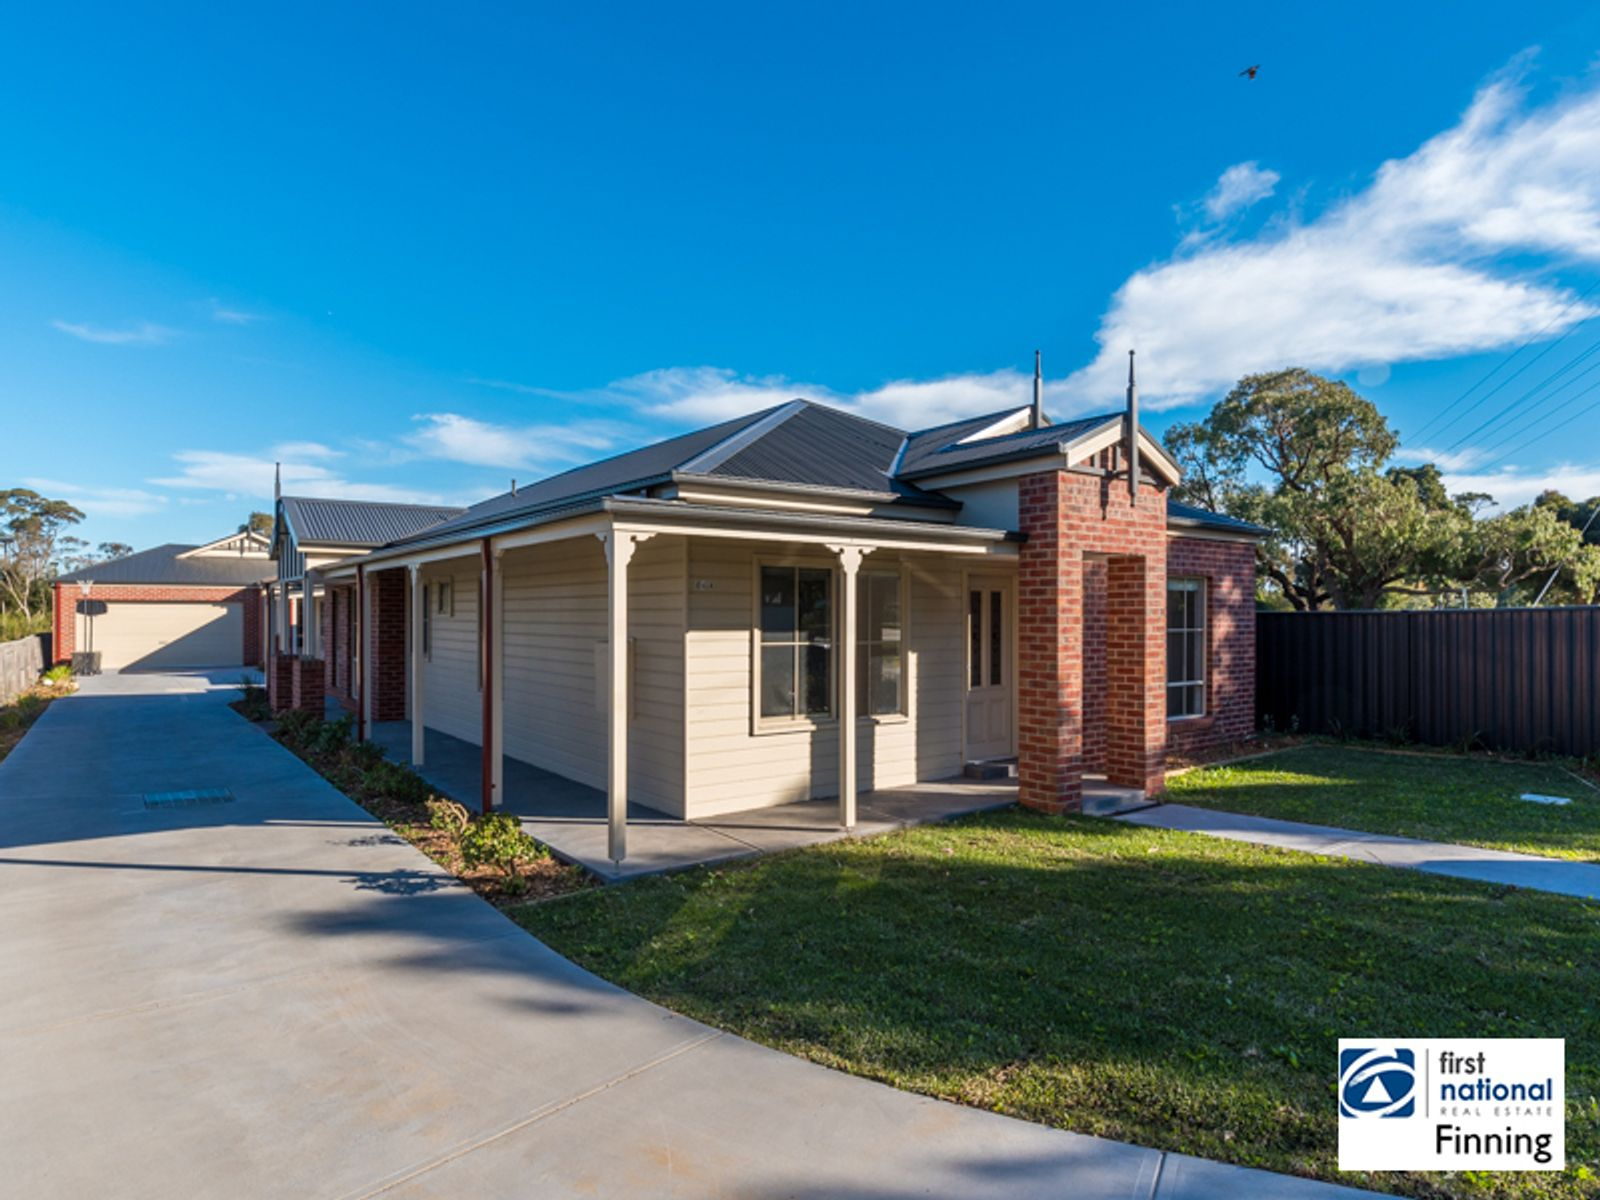 54A South Gippsland Highway, Tooradin, VIC 3980